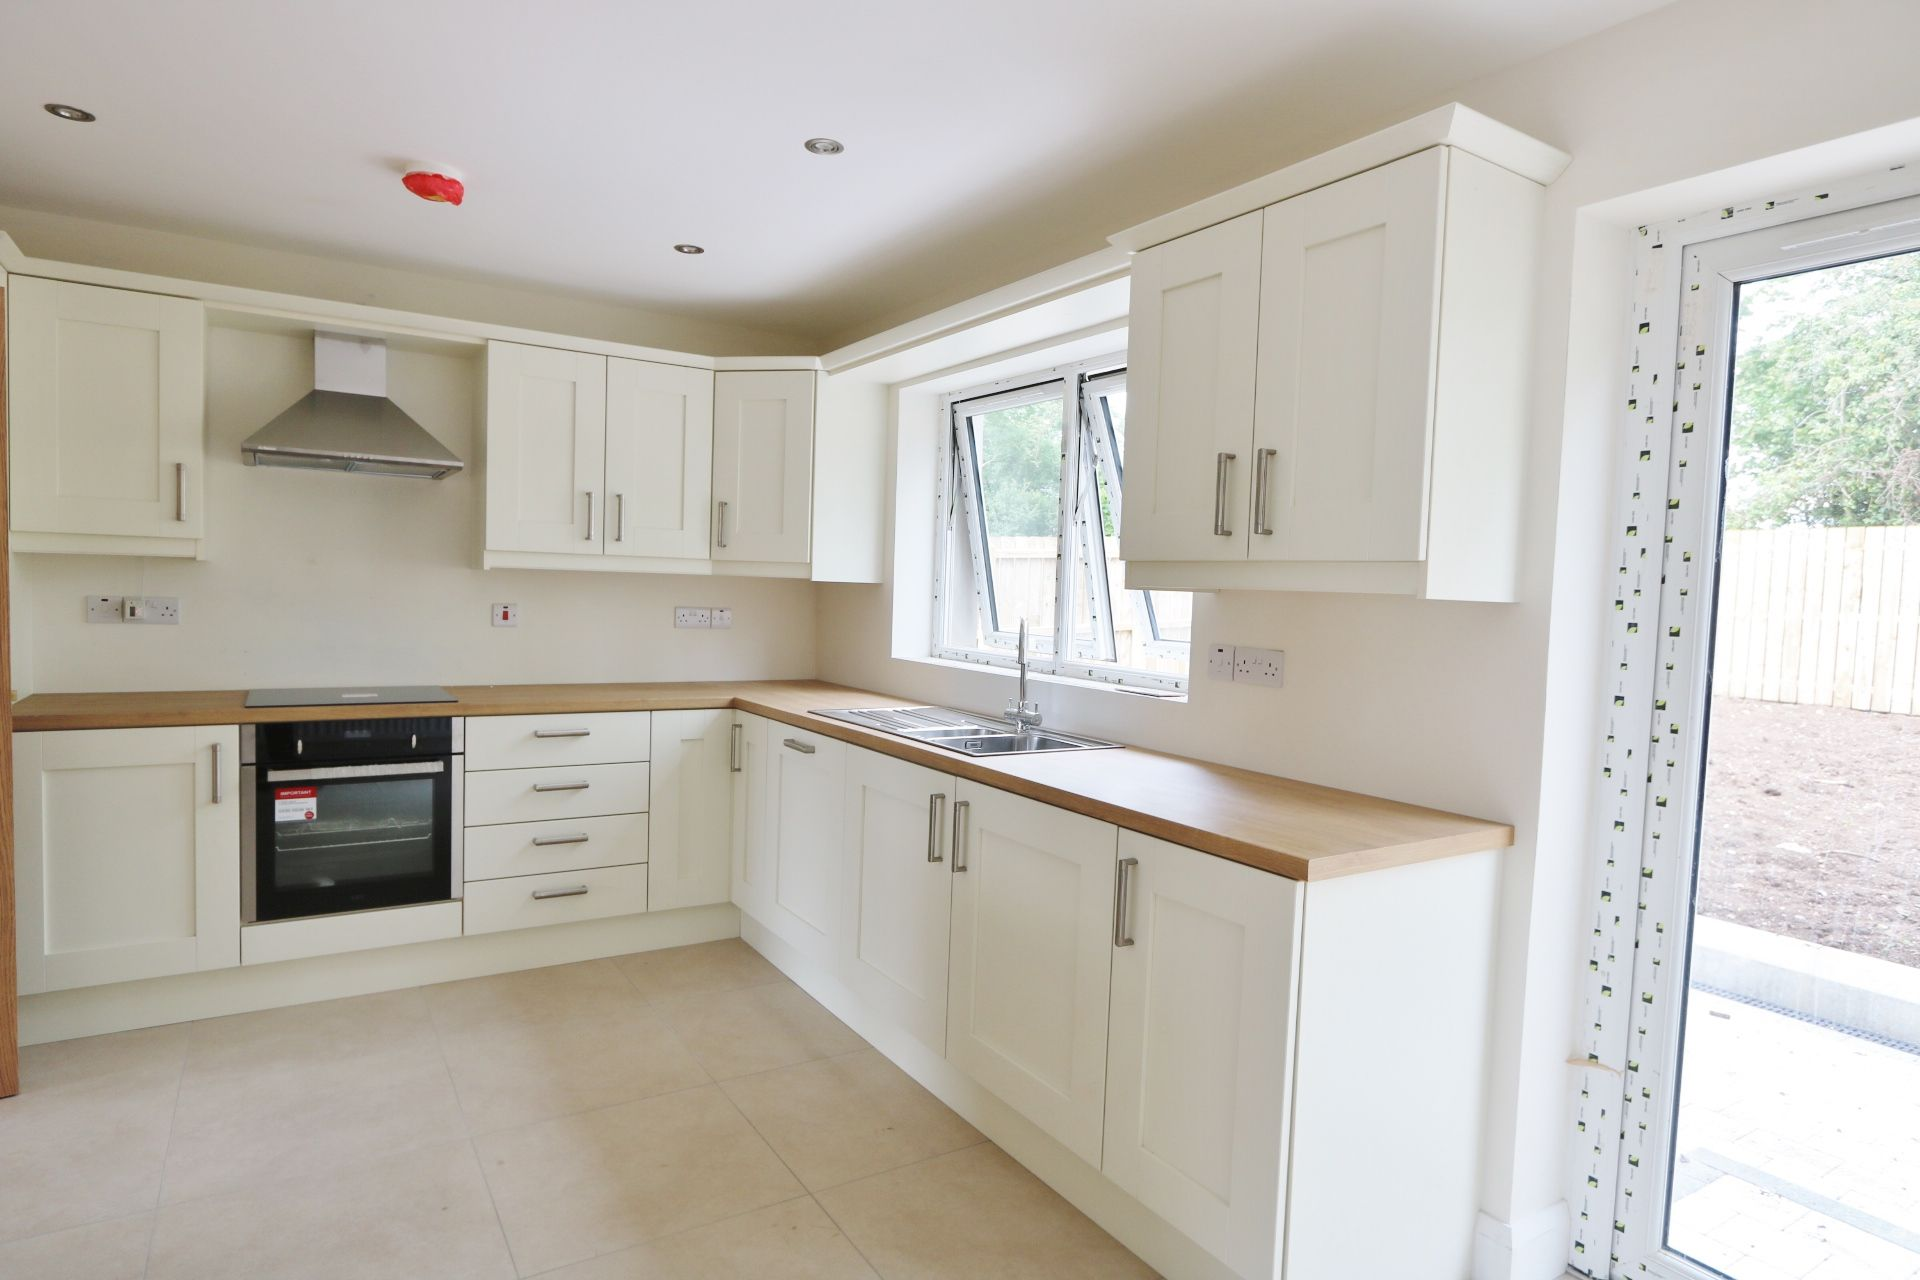 3 bedroom semi-detached house For Sale in Milltown,  Antrim - Photograph 2